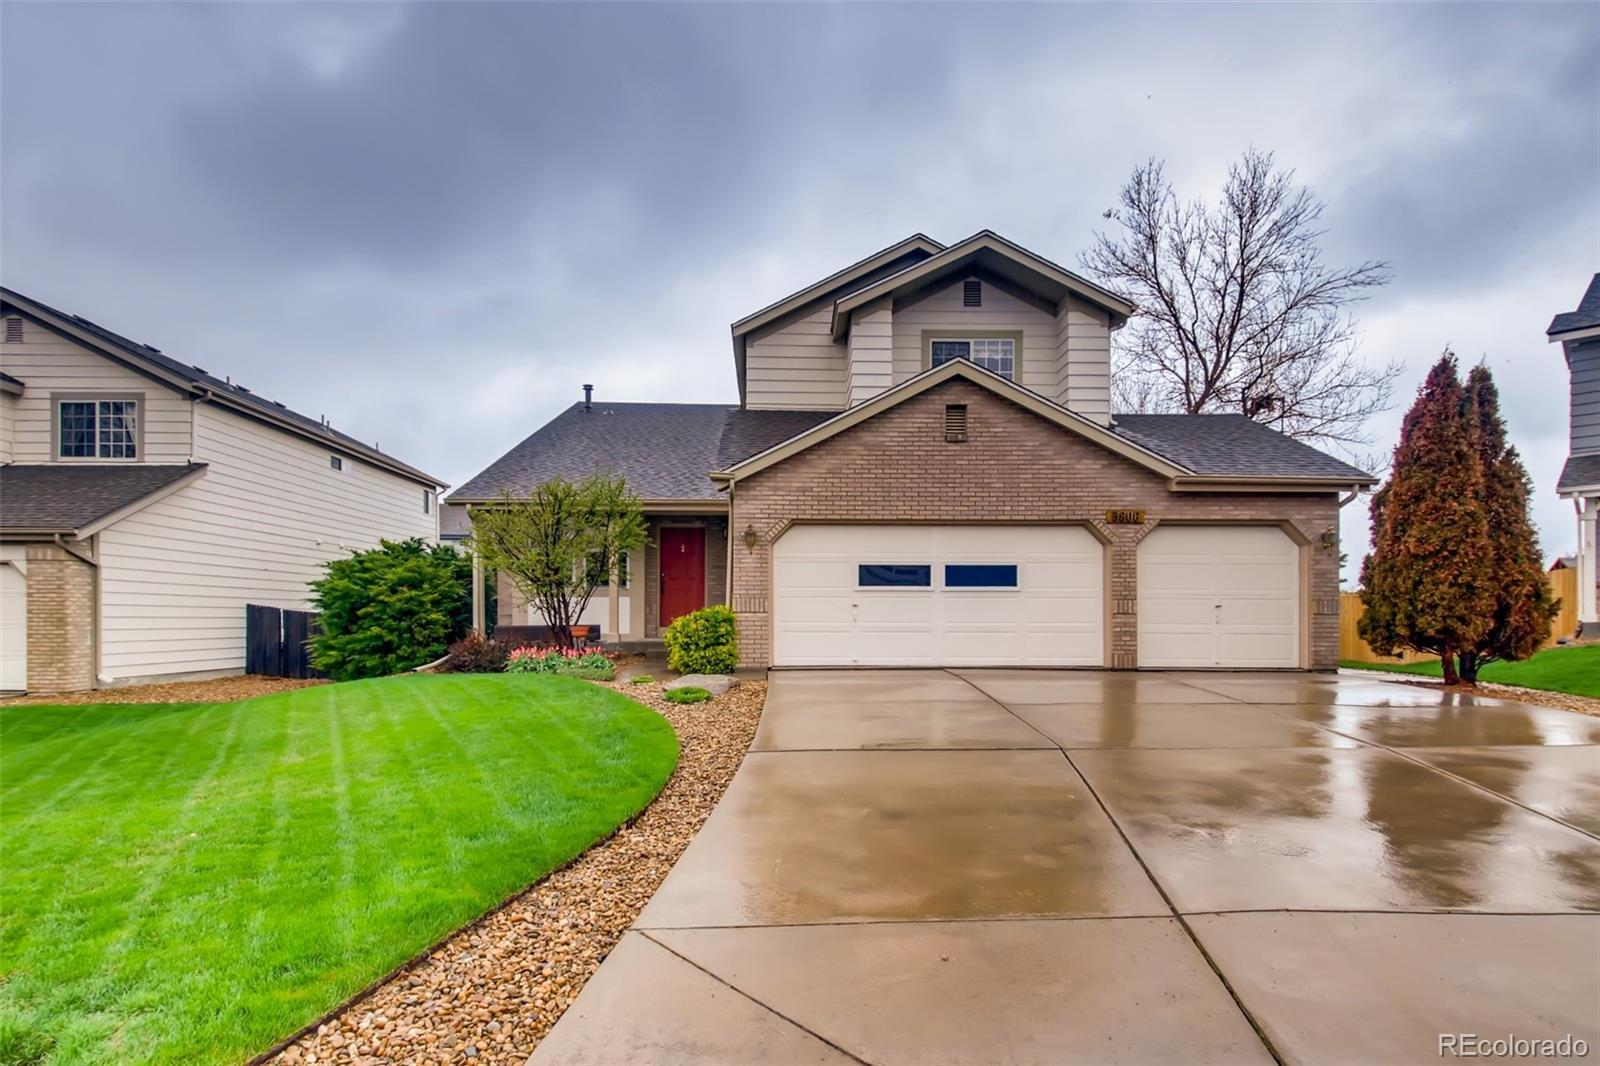 5806 W 81st Place, Arvada, CO 80003 - #: 3036781